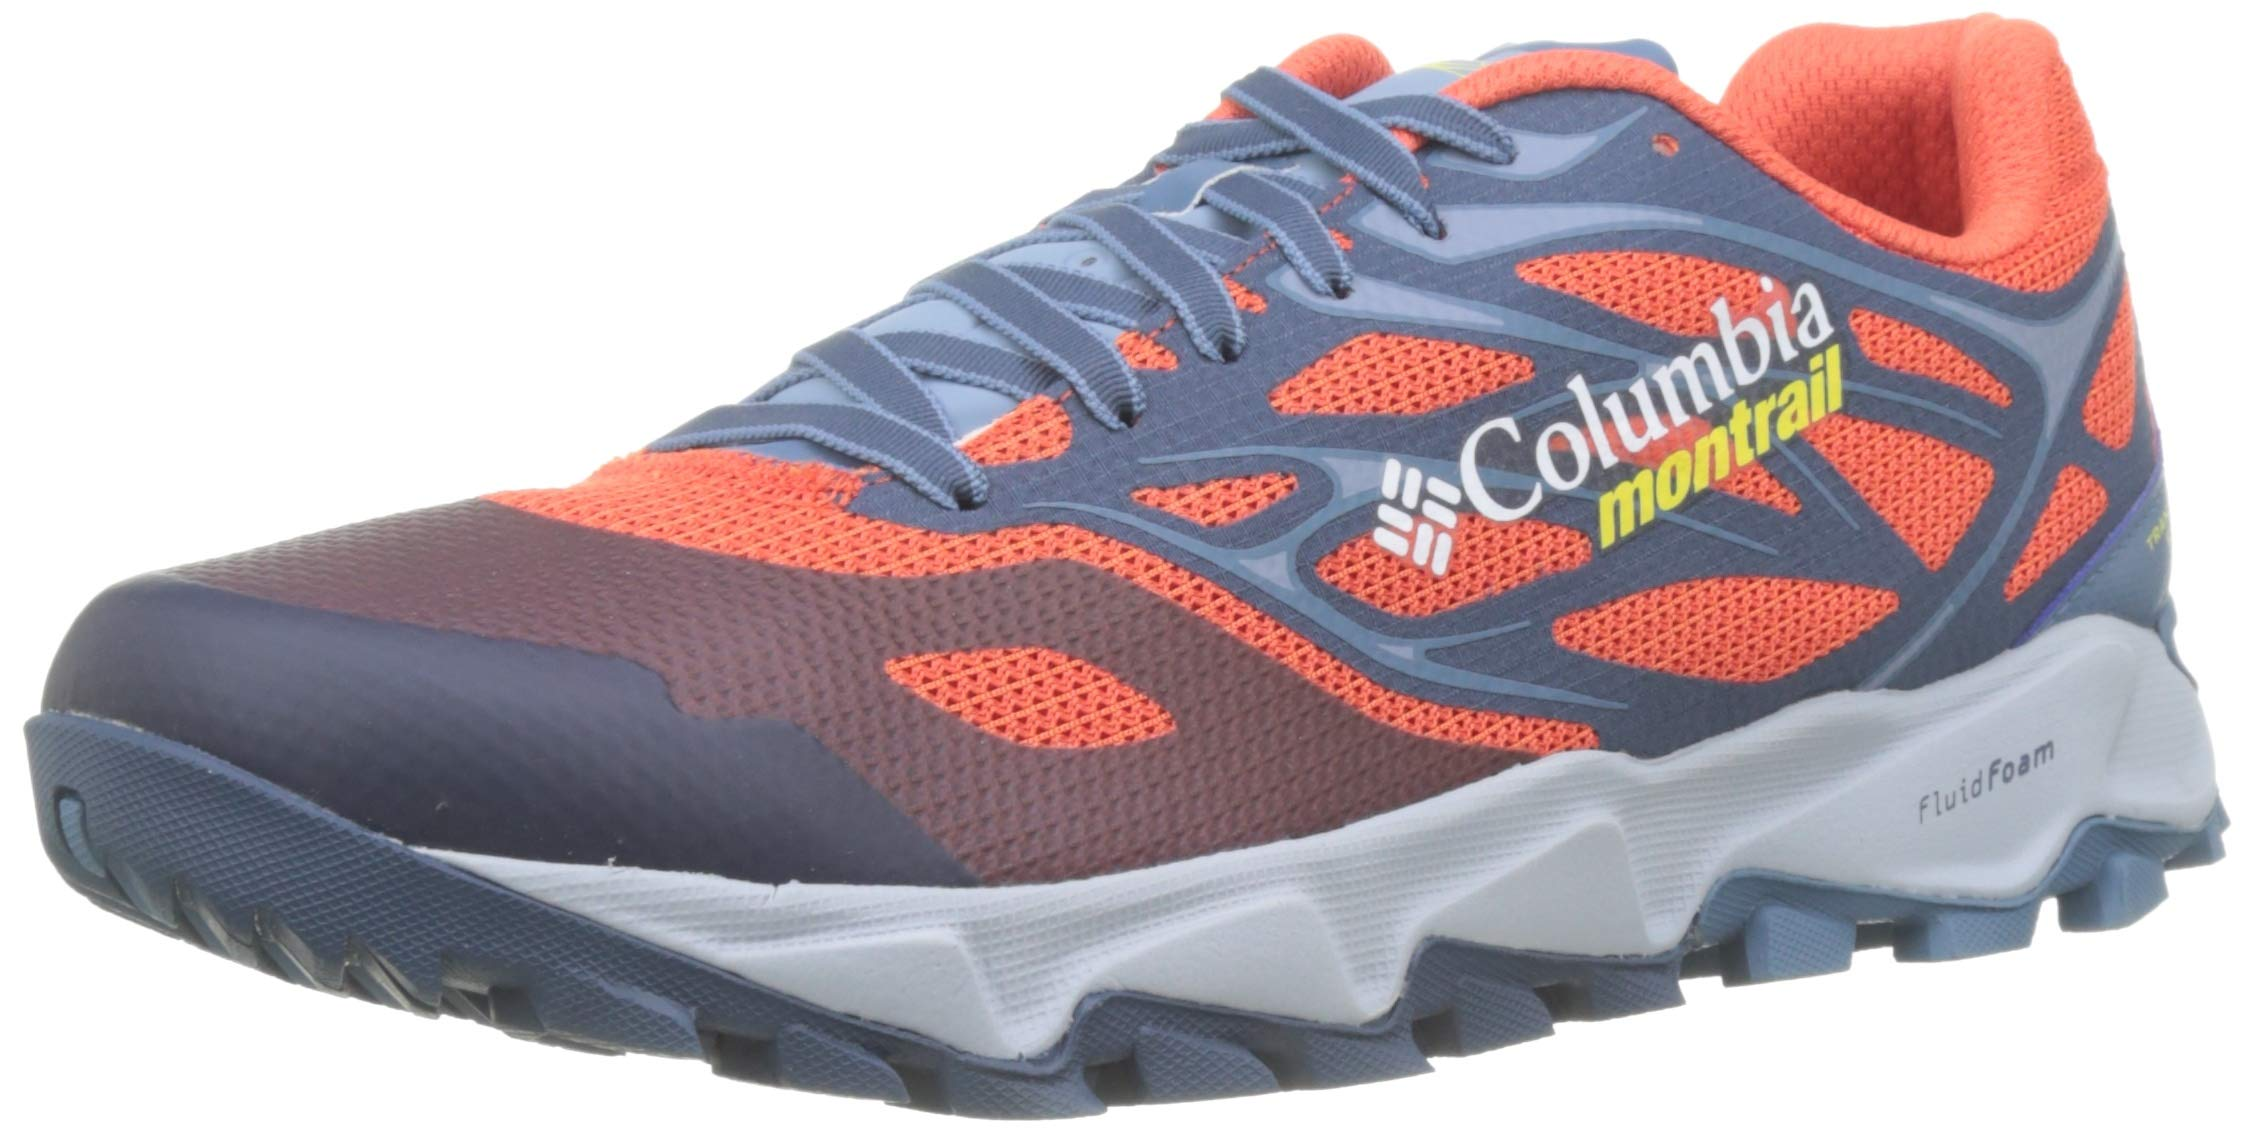 De RunningTrans k Yellow Alps 40Rougered Trail QuartzAcid F Chaussures tIiTaille Columbia Homme m0wvN8n